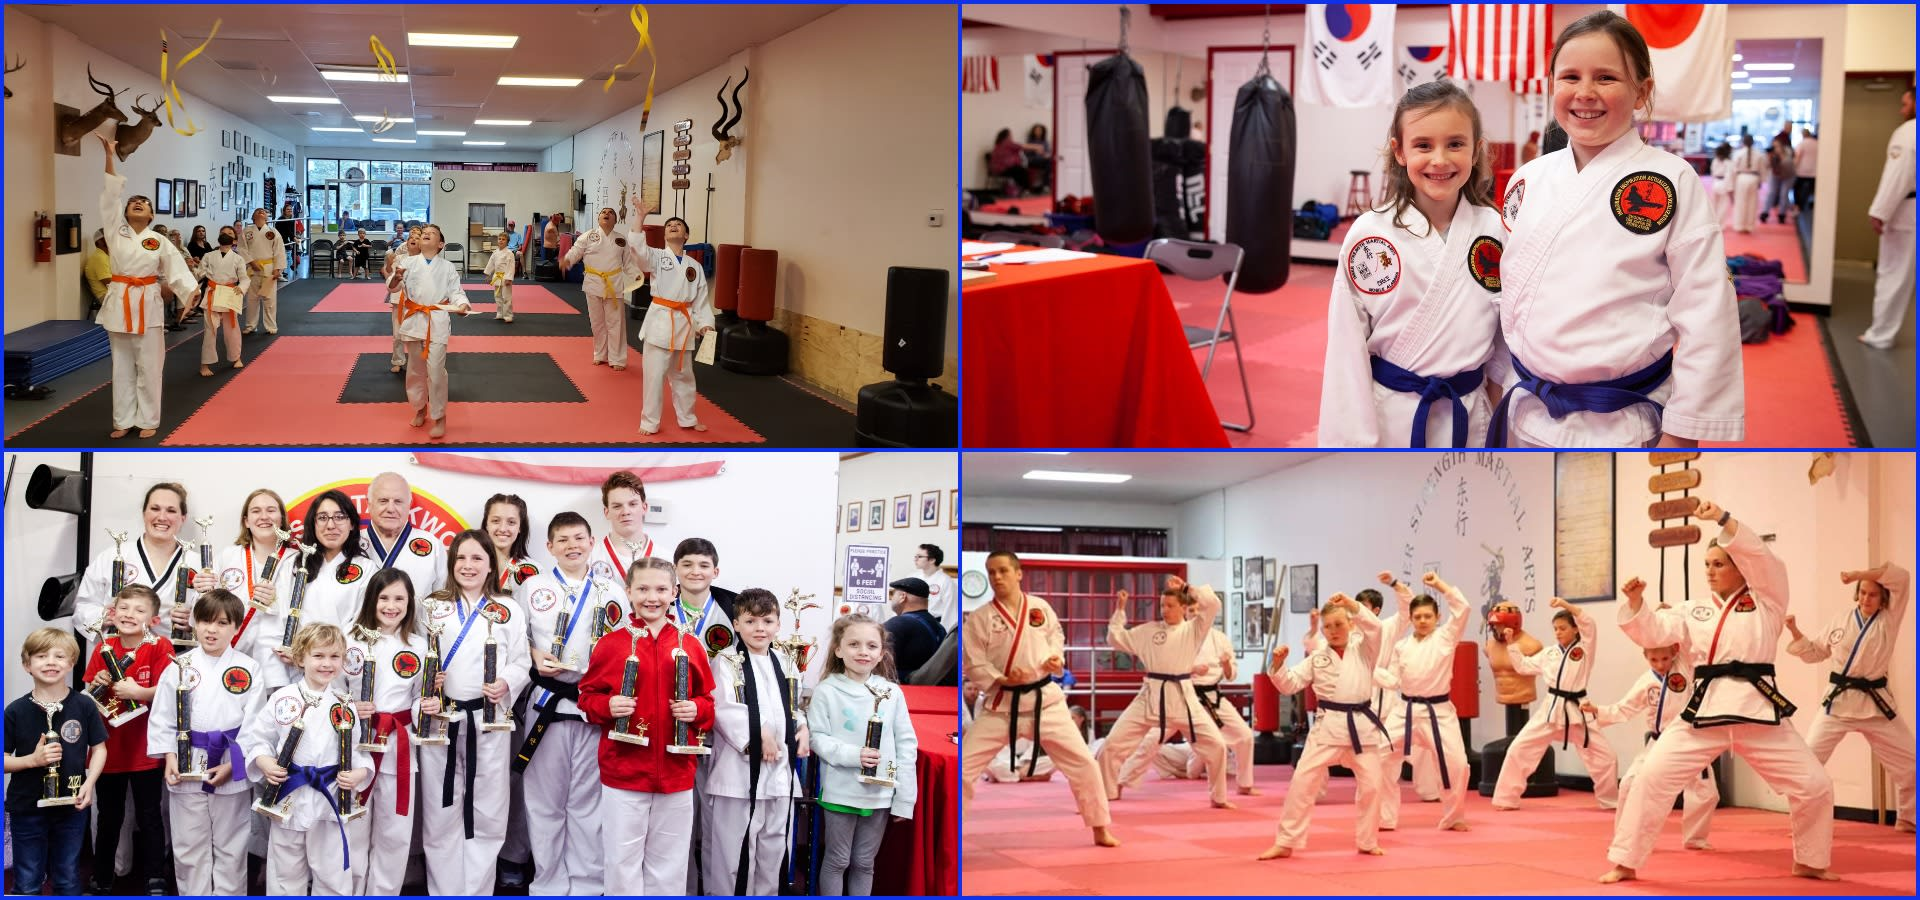 <style> h1 {   text-shadow: 2px 2px 8px #1e2a55; } </style>Expert Taekwondo Instruction in Mobile